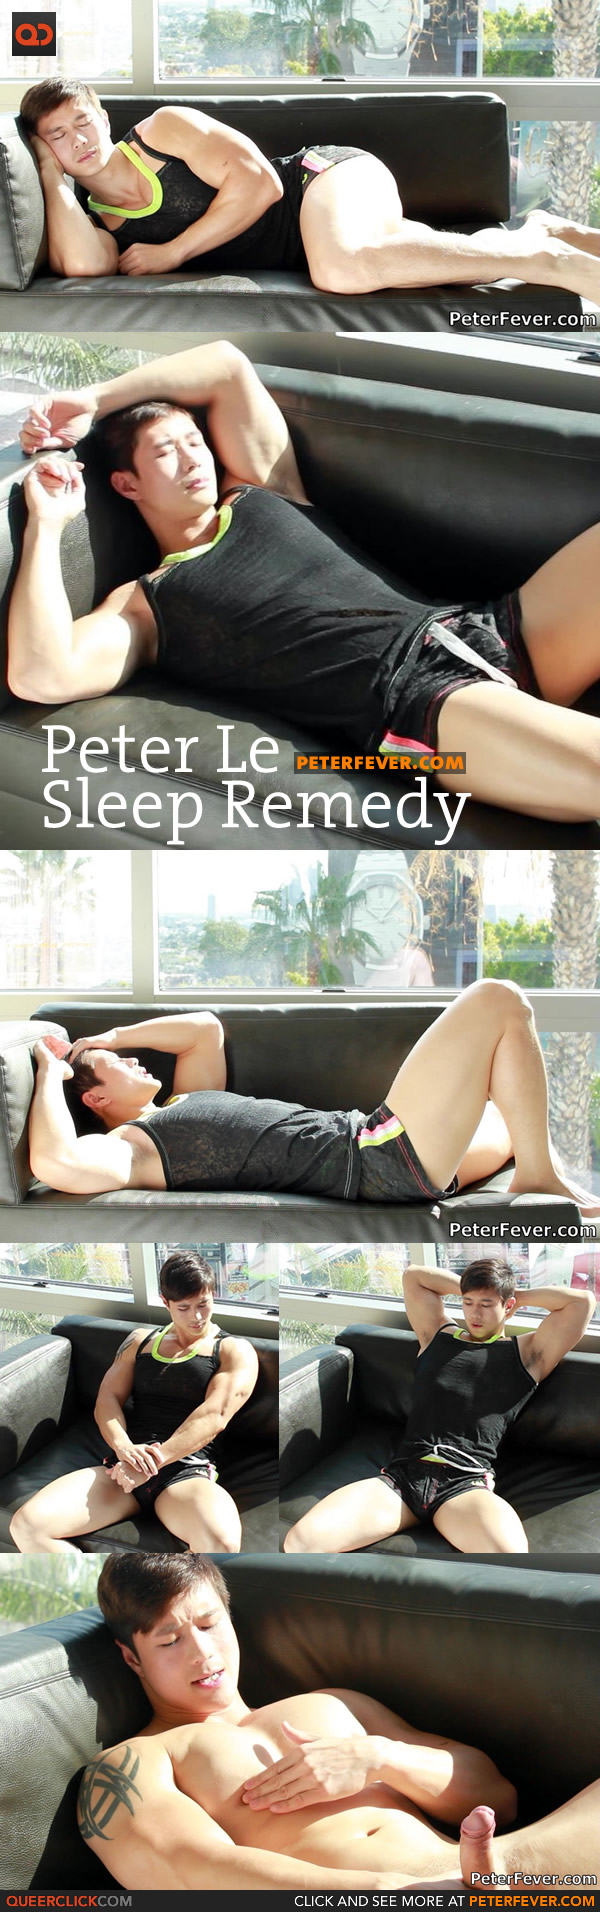 PeterFever: Peter Le - Sleep Remedy